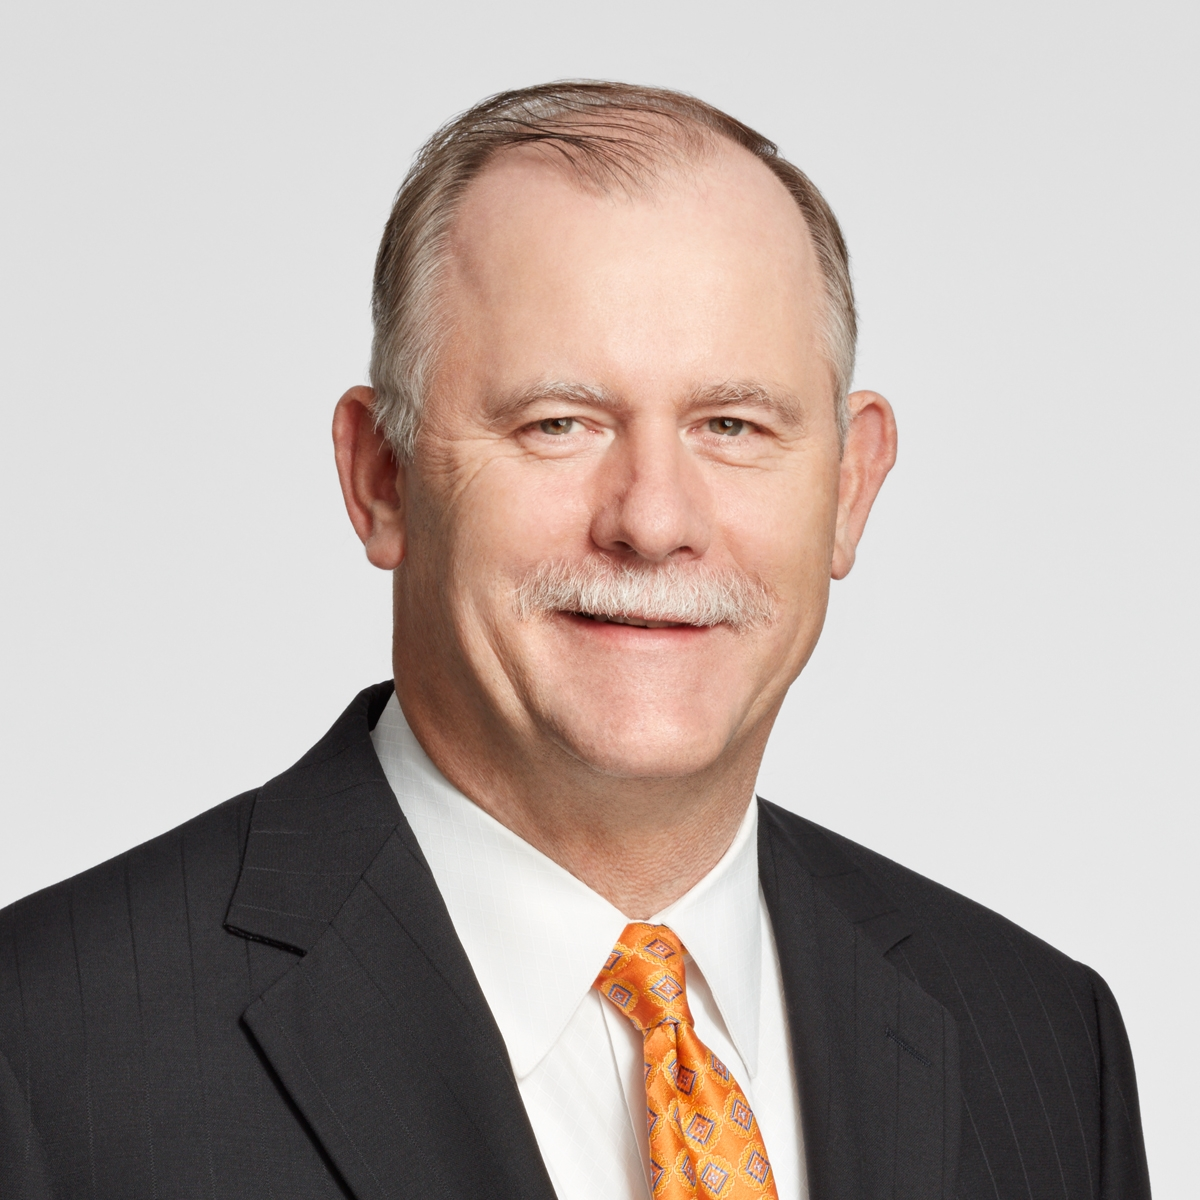 "Charles Nelson - Voya Financial CEO, RetirementCharles (""Charlie"") Nelson is chief executive officer of Retirement for Voya Financial, overseeing Retail Wealth Management, Tax-Exempt and Corporate Markets, which comprise the company's workplace and individual retirement businesses, including 401(k), 403(b) ,457 plans and IRAs Prior to joining Voya, Charlie served as president of Retirement Services for Great-West Financial and most recently led the legacy Great- West retirement business of Empower Retirement, a business unit of Great-West Life and Annuity Insurance Company. He has over 30 years of leadership experience in the industry and was named the second most influential player in the 401(k) market, according to the 401(k) Wire's 2012 Most Influential ranking list. During his career, Charlie has managed all aspects of defined contribution and defined businesses; overseeing government, healthcare, nonprofit, 401(k) and FASCore institutional lines of business, while also managing recordkeeping, administration, operations, sales, products, financial results and broker-dealer services."